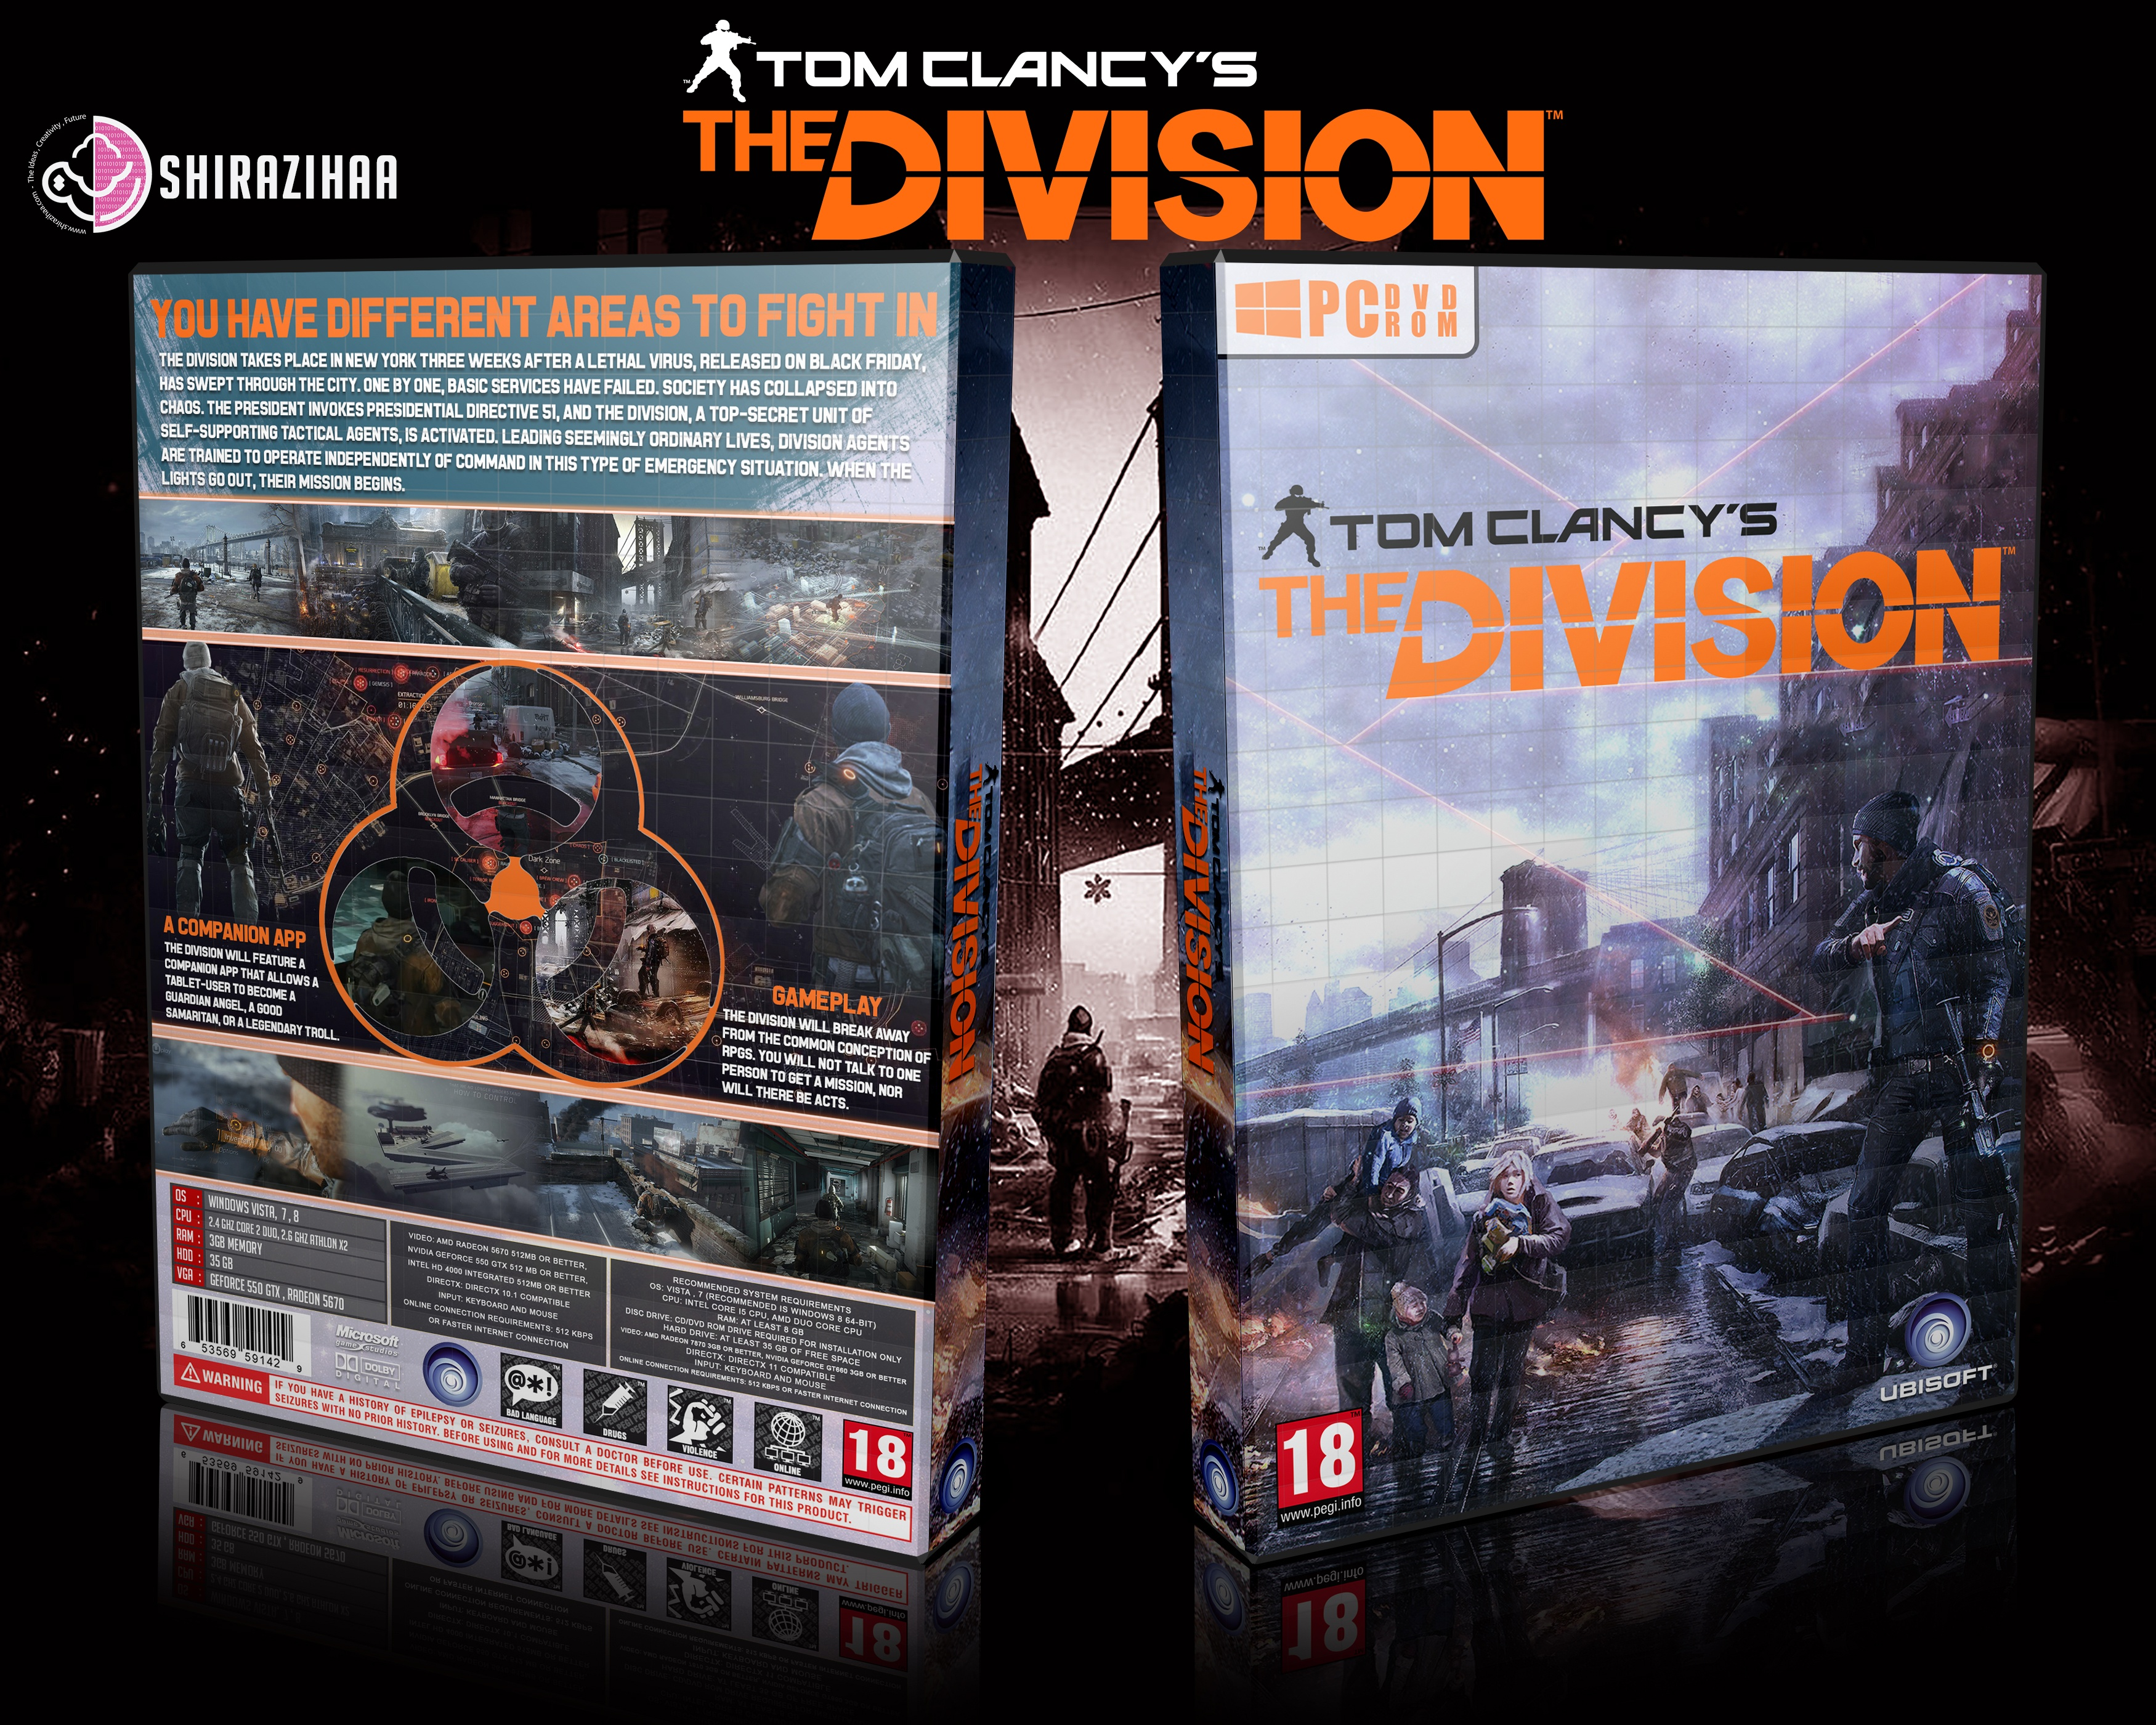 Tom Clancy's The Division box cover